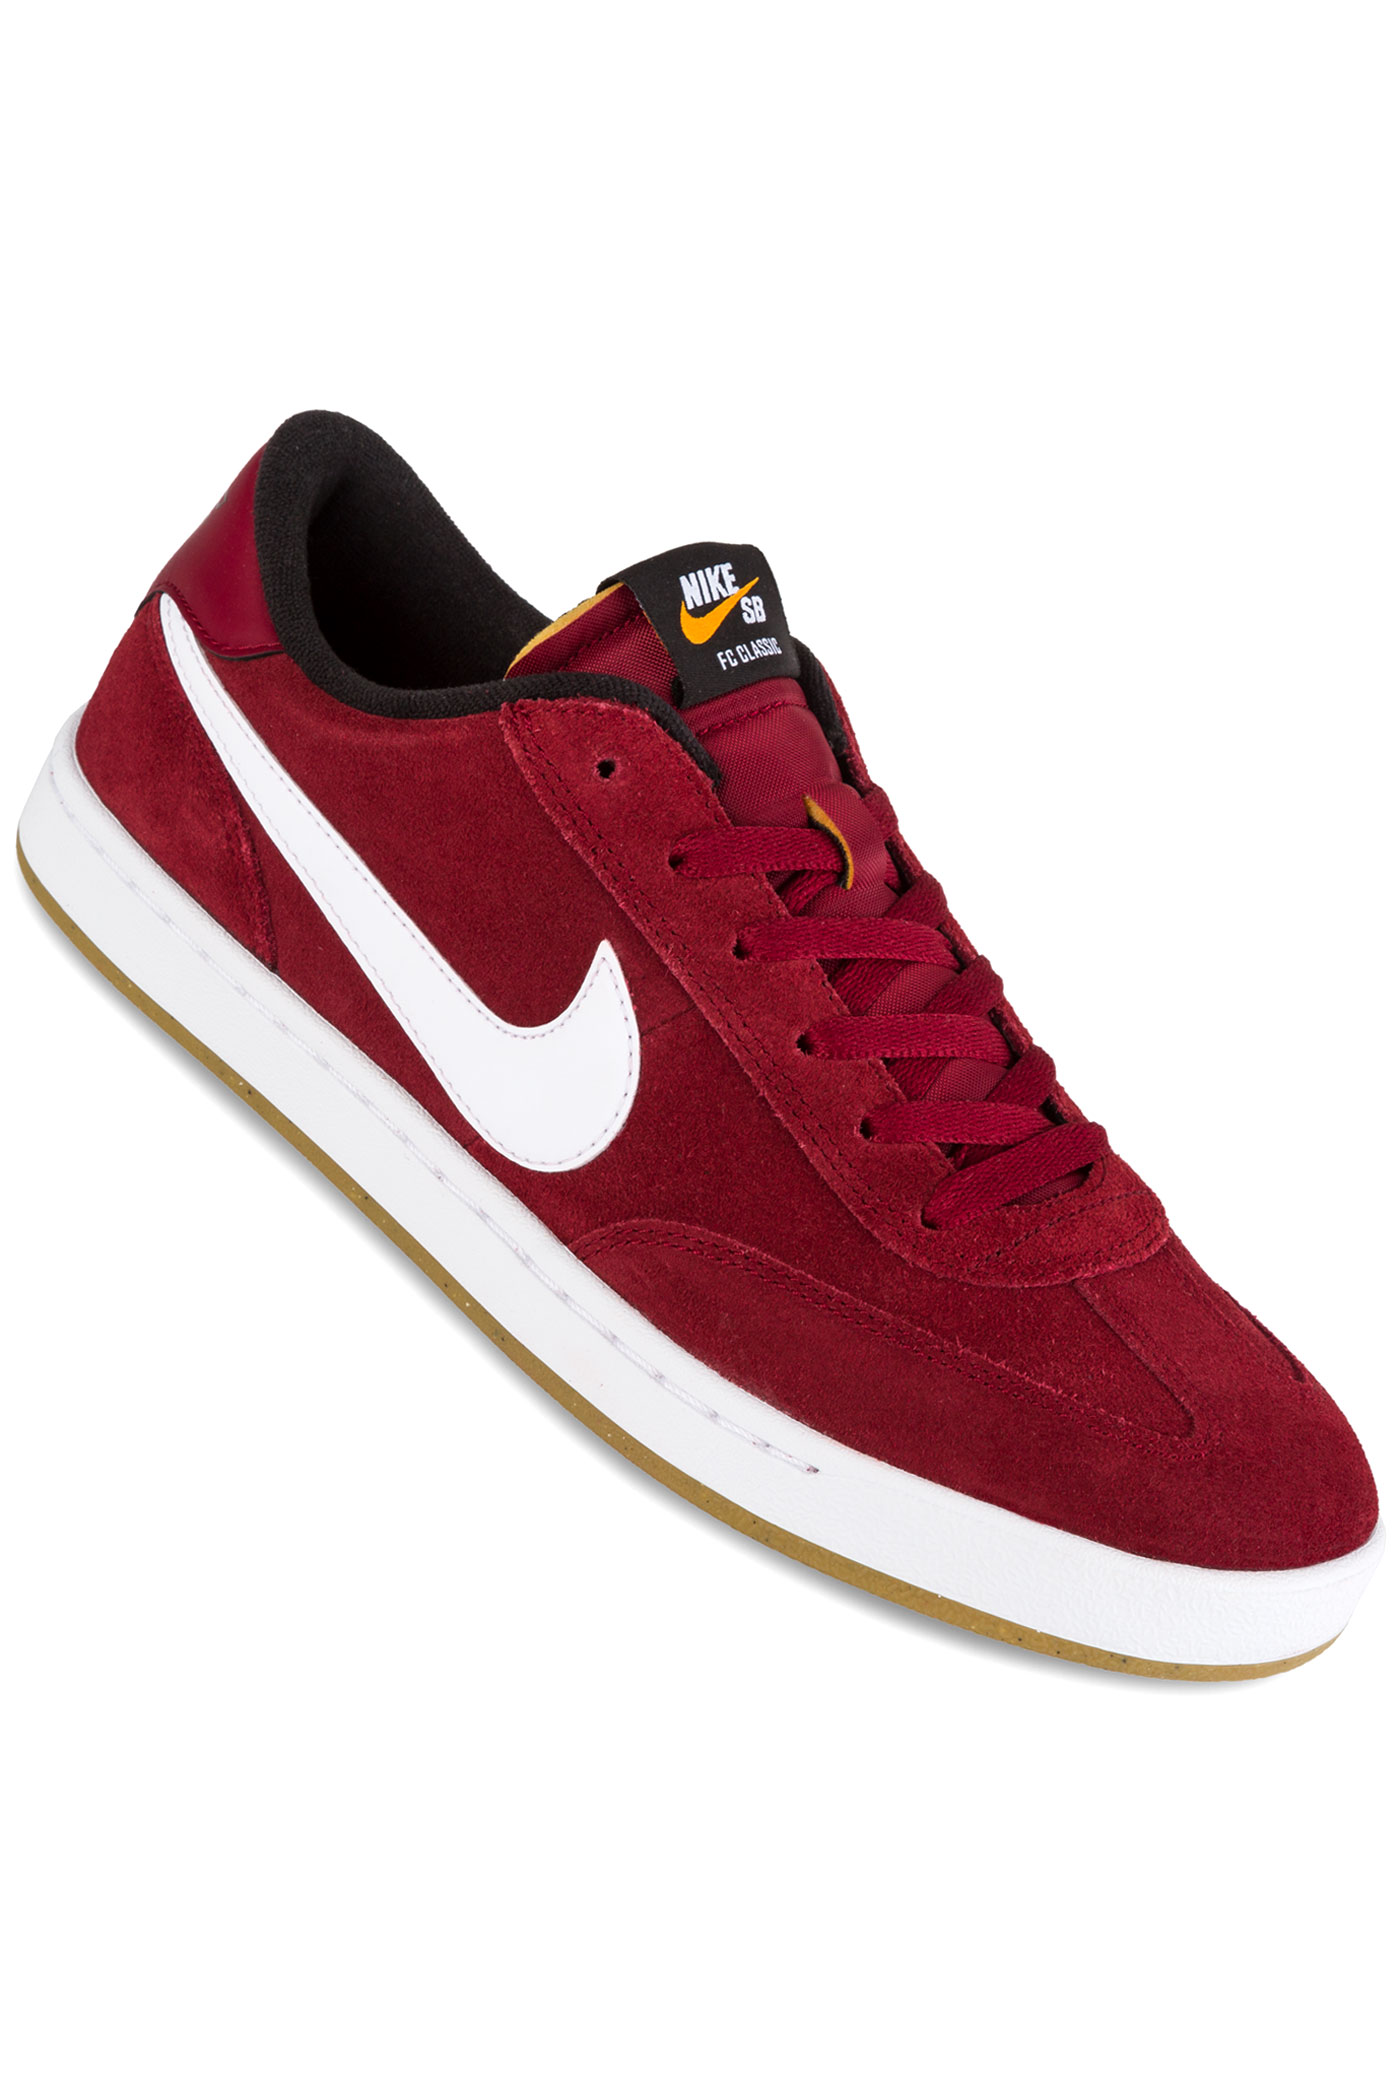 nike sb fc classic chaussure team red white achetez sur skatedeluxe. Black Bedroom Furniture Sets. Home Design Ideas